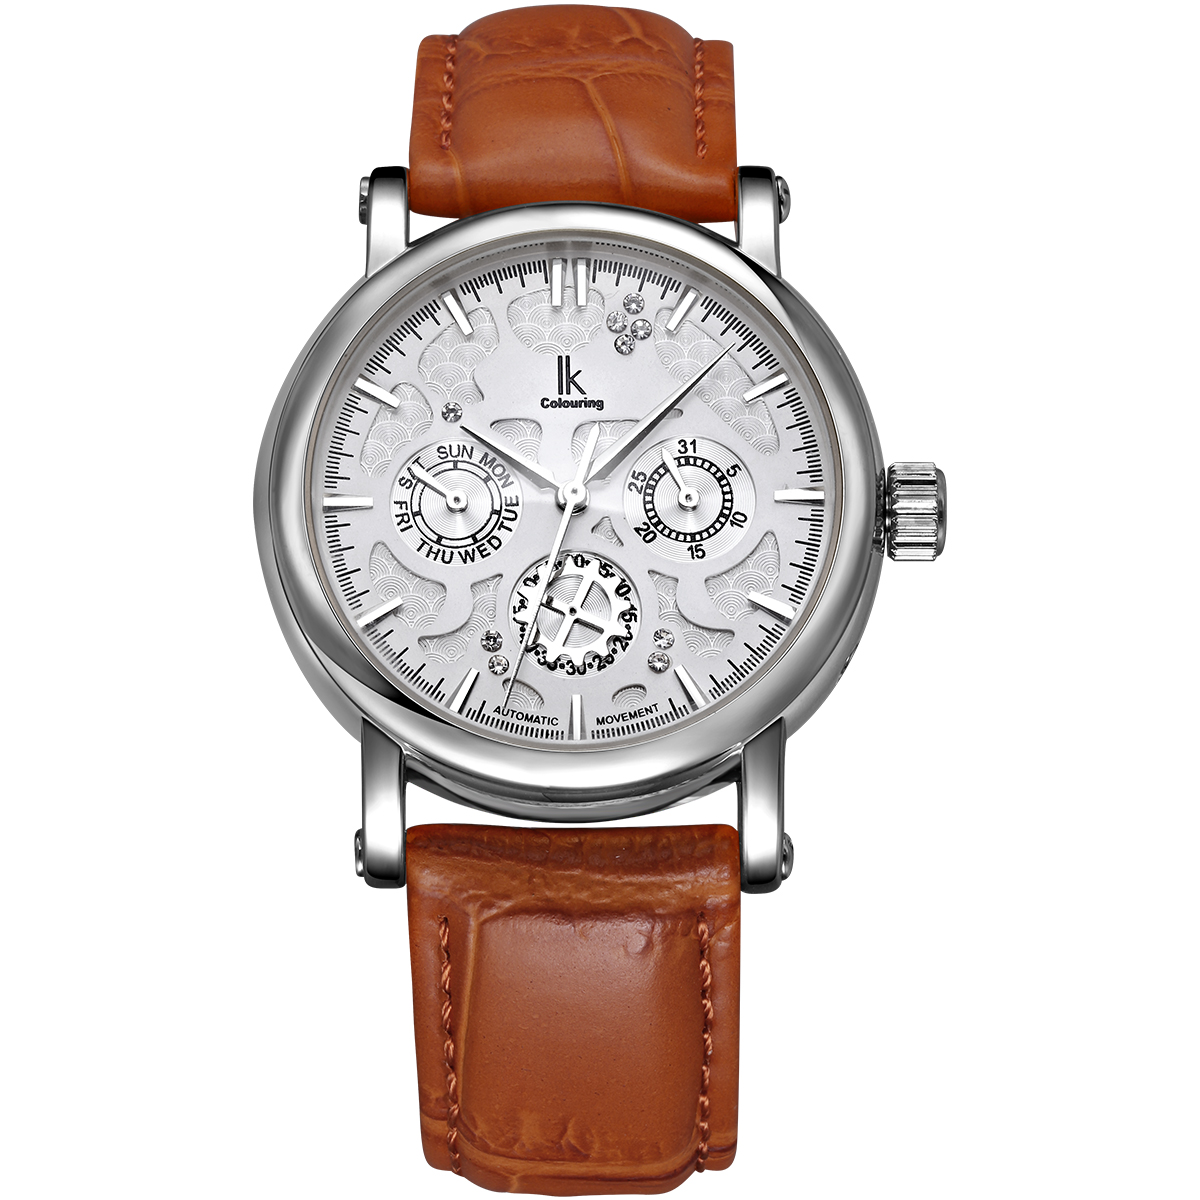 IK Colouring Automatic Mechanical SelfWind Watch Multifunction Mens Wristwatch Hollow Unique Carved Rhinestone Business Watches k colouring women ladies automatic self wind watch hollow skeleton mechanical wristwatch for gift box